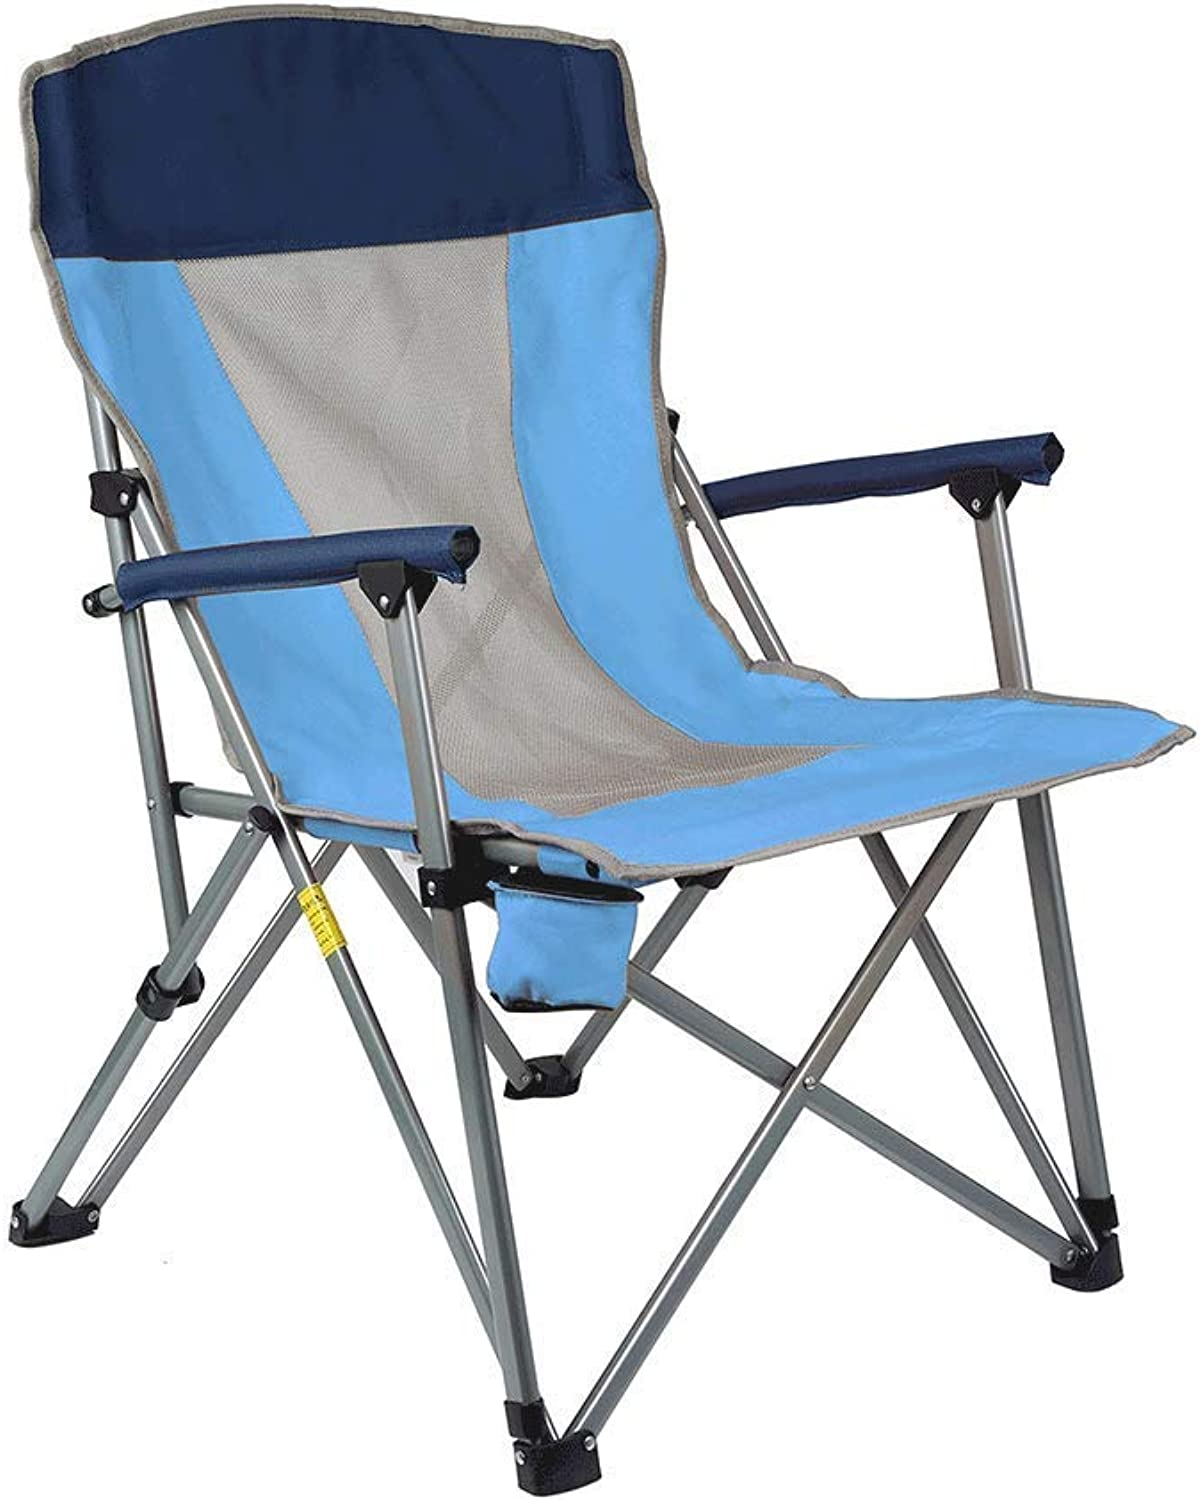 SCJ Folding Stool, Stainless Steel, Waterproof, Thick Mesh, Indoor, Outdoor, Maximum Load Capacity 100Kg (color   bluee)